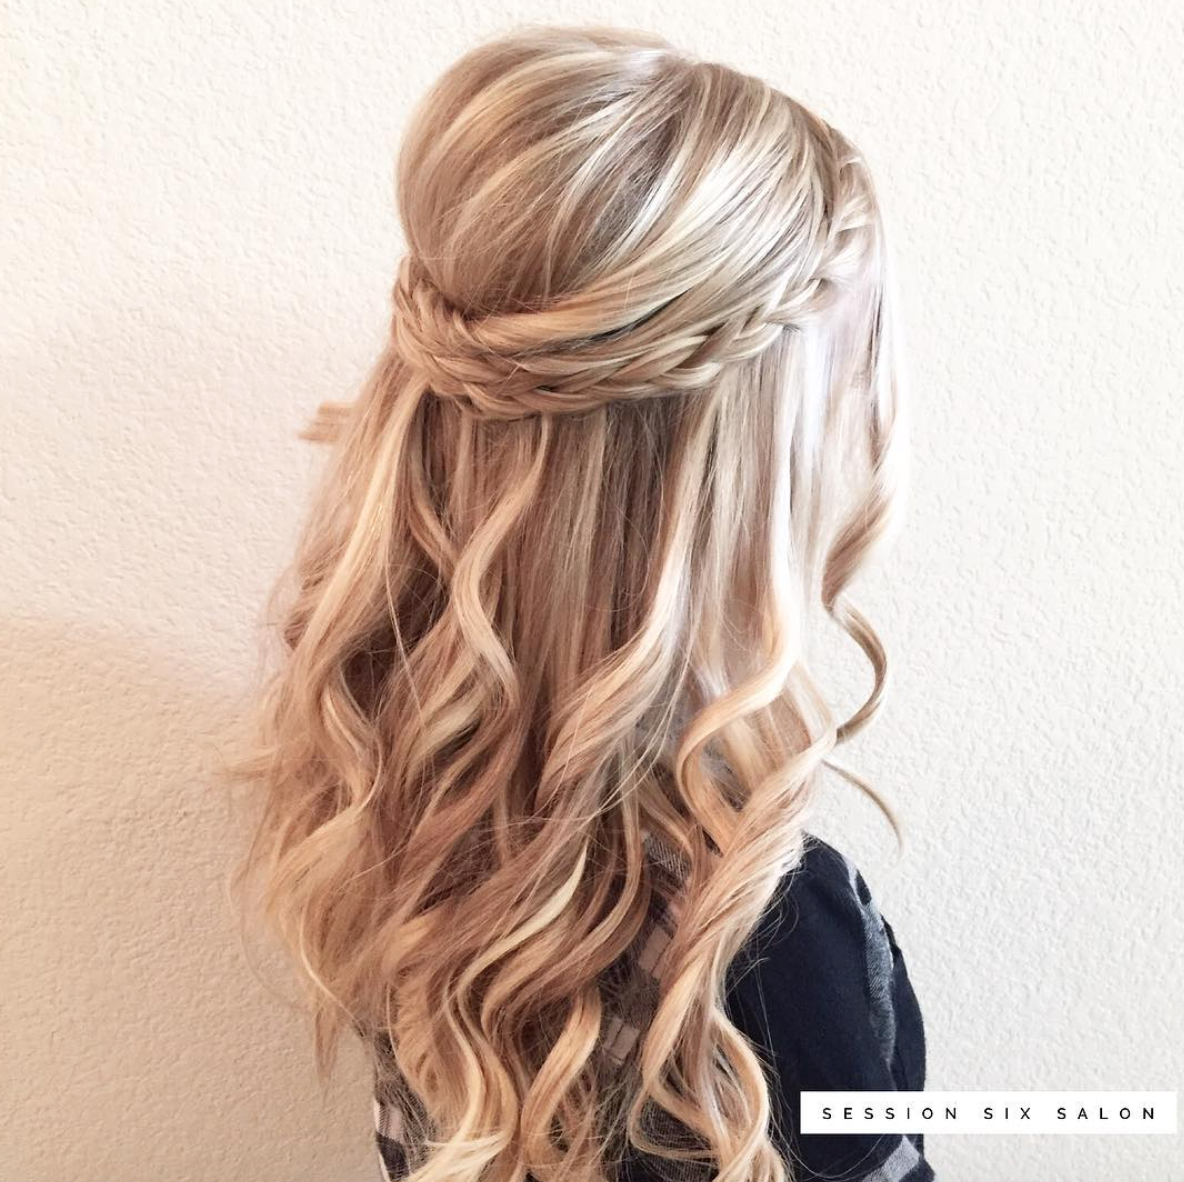 Hairstyles Half: Bridal Half Updo With Small Braid.